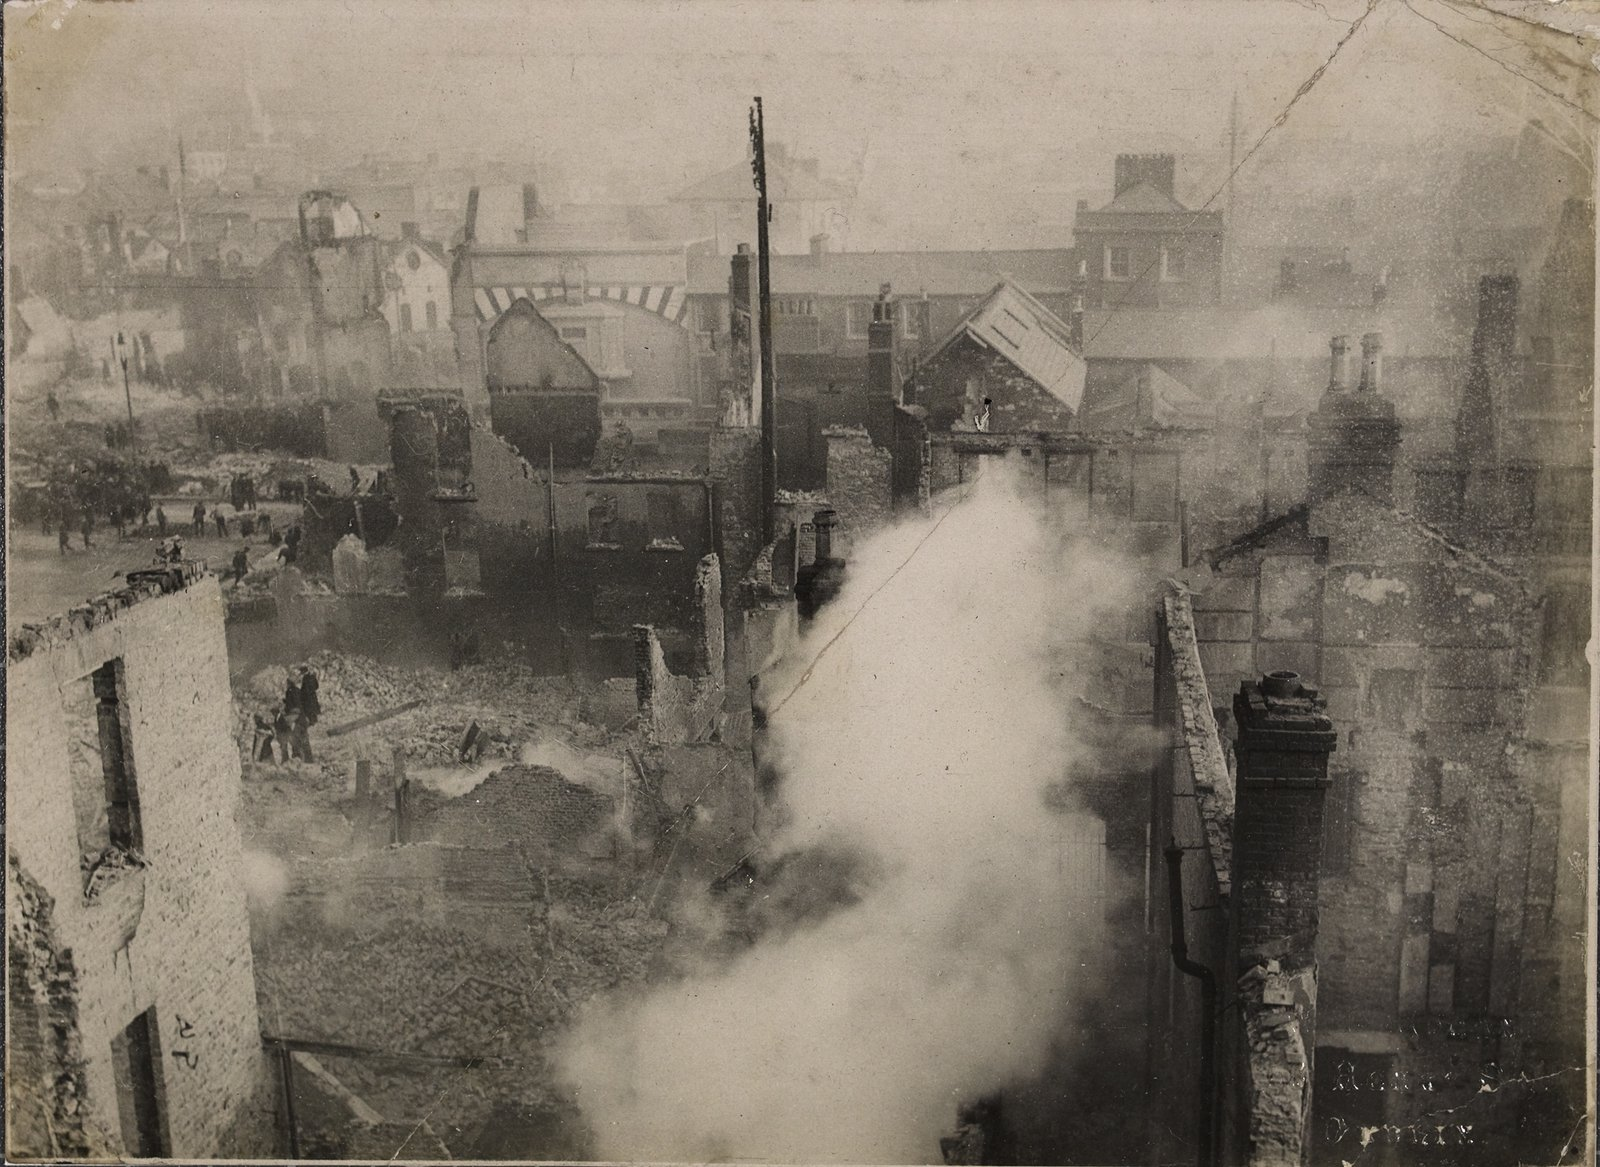 Image - A birds-eye view of the devastated city after the burning of Cork. Image courtesy of the National Library of Ireland